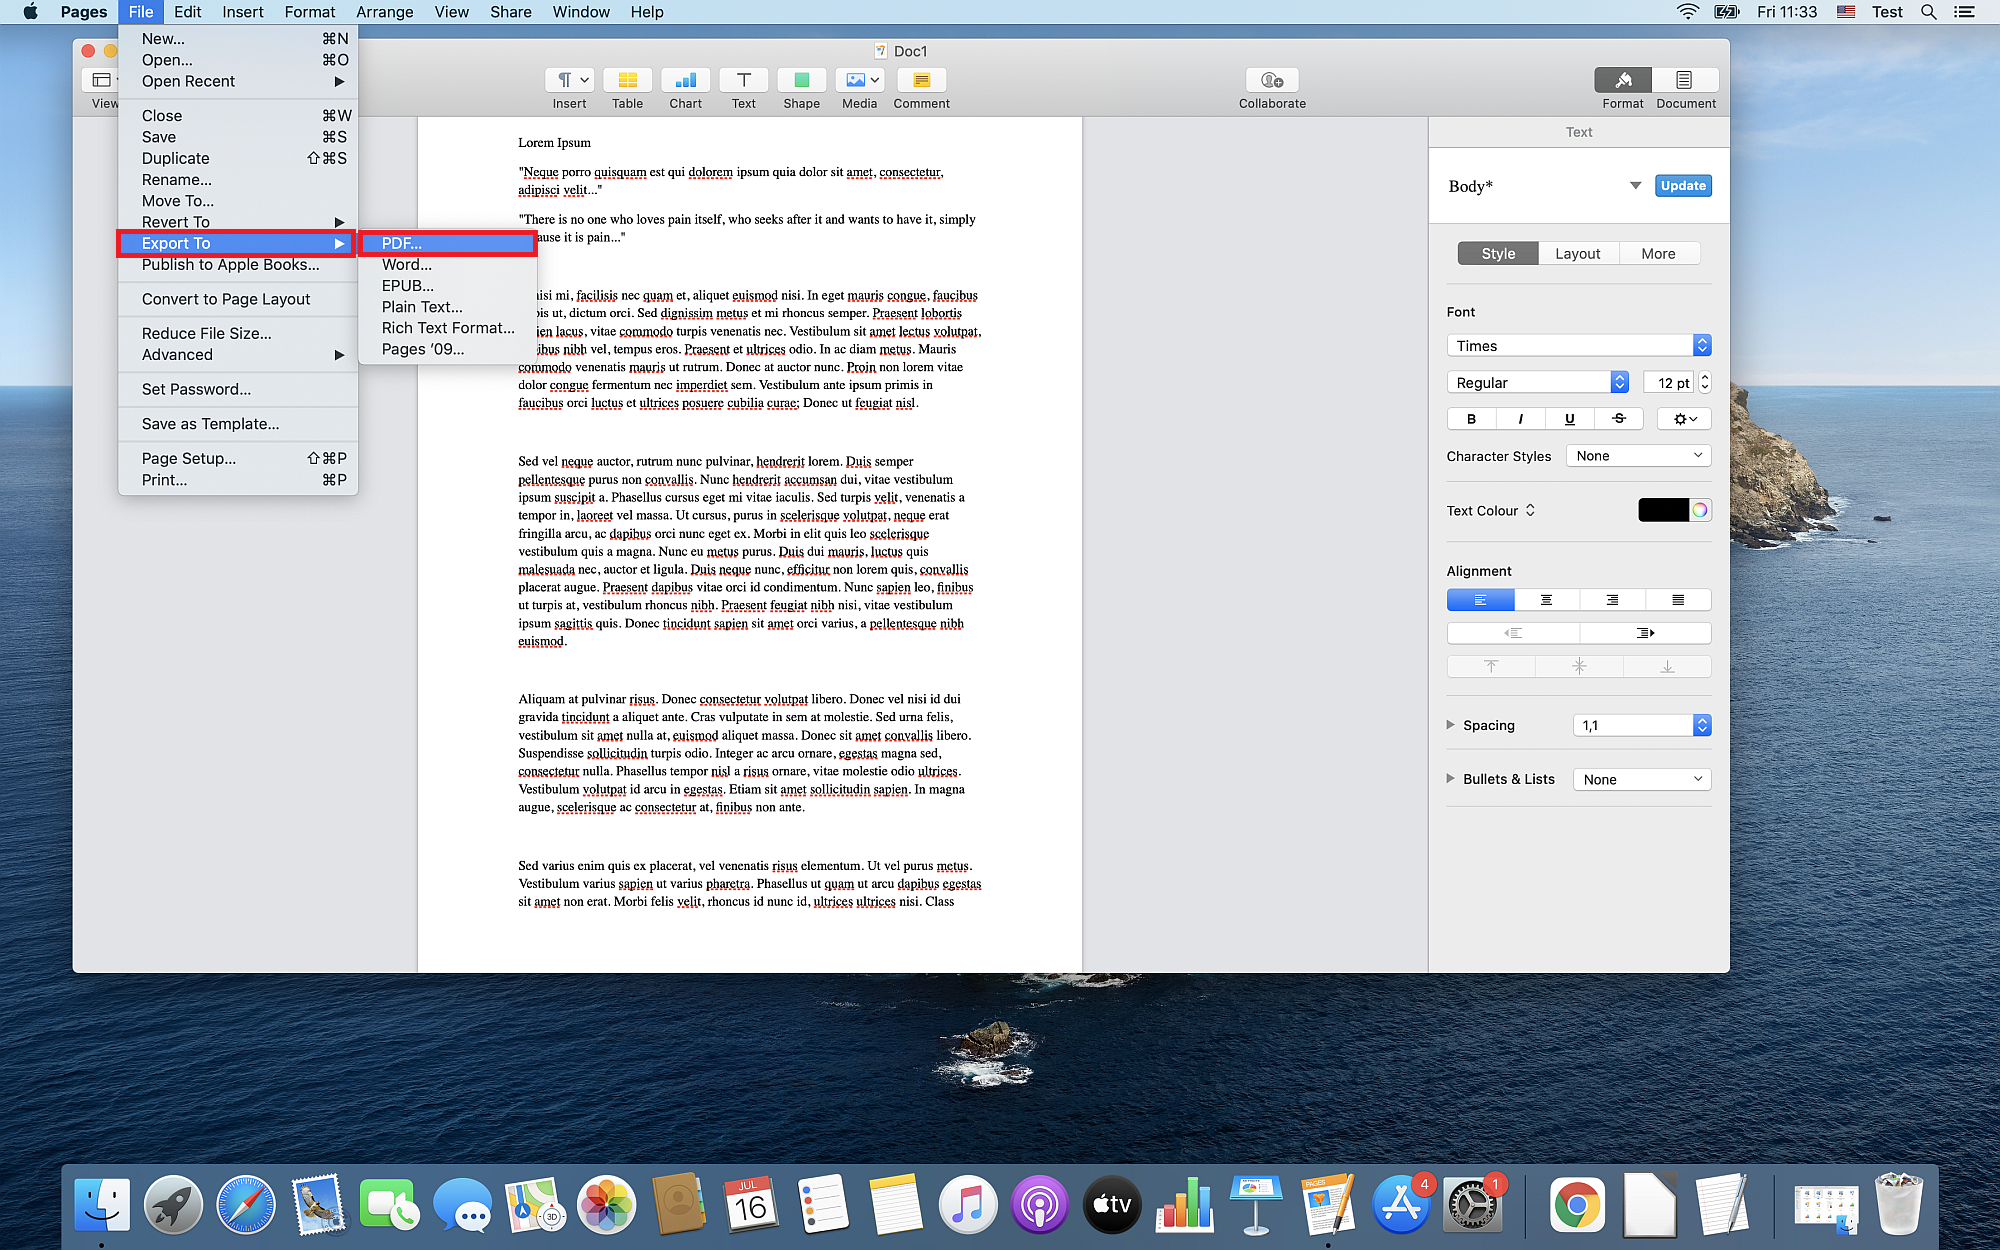 How to convert a PAGES document to PDF on macOS Catalina?